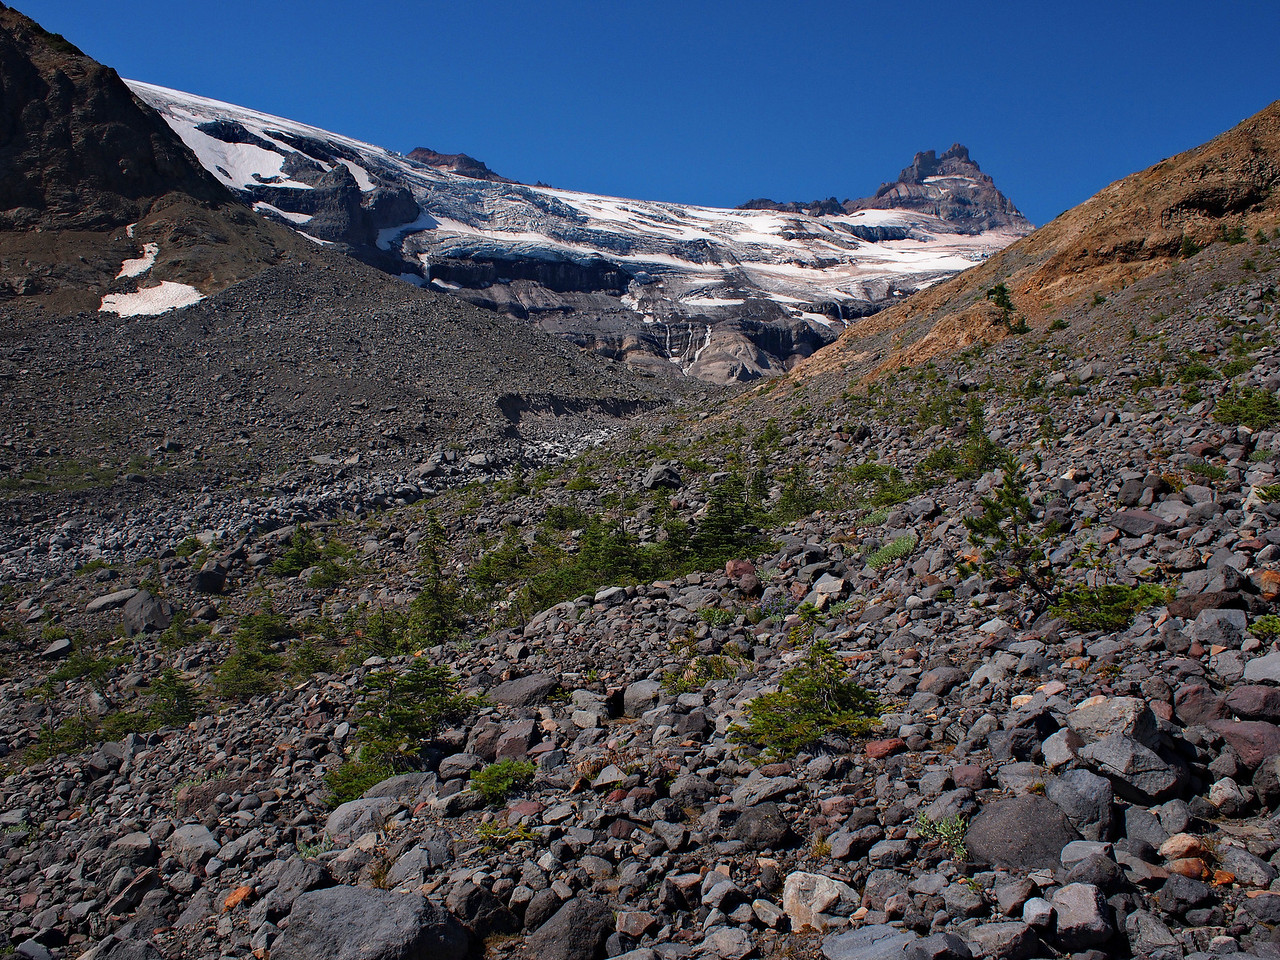 Looking up at the extended moraine field, and the edge of the glaciers responsible for that and the water.